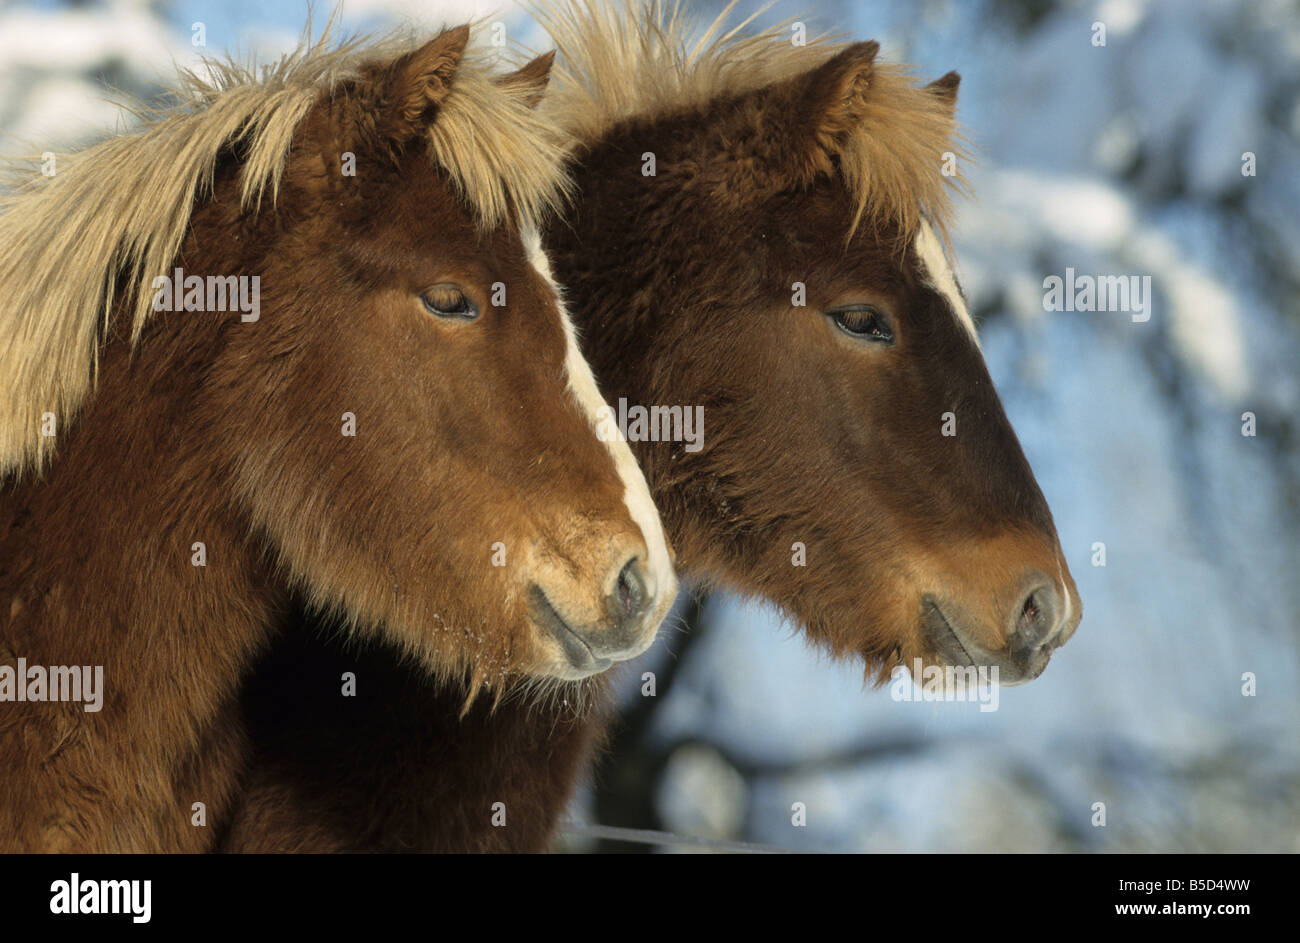 Icelandic Horse (Equus caballus), two individuals in winter coat on a meadow - Stock Image